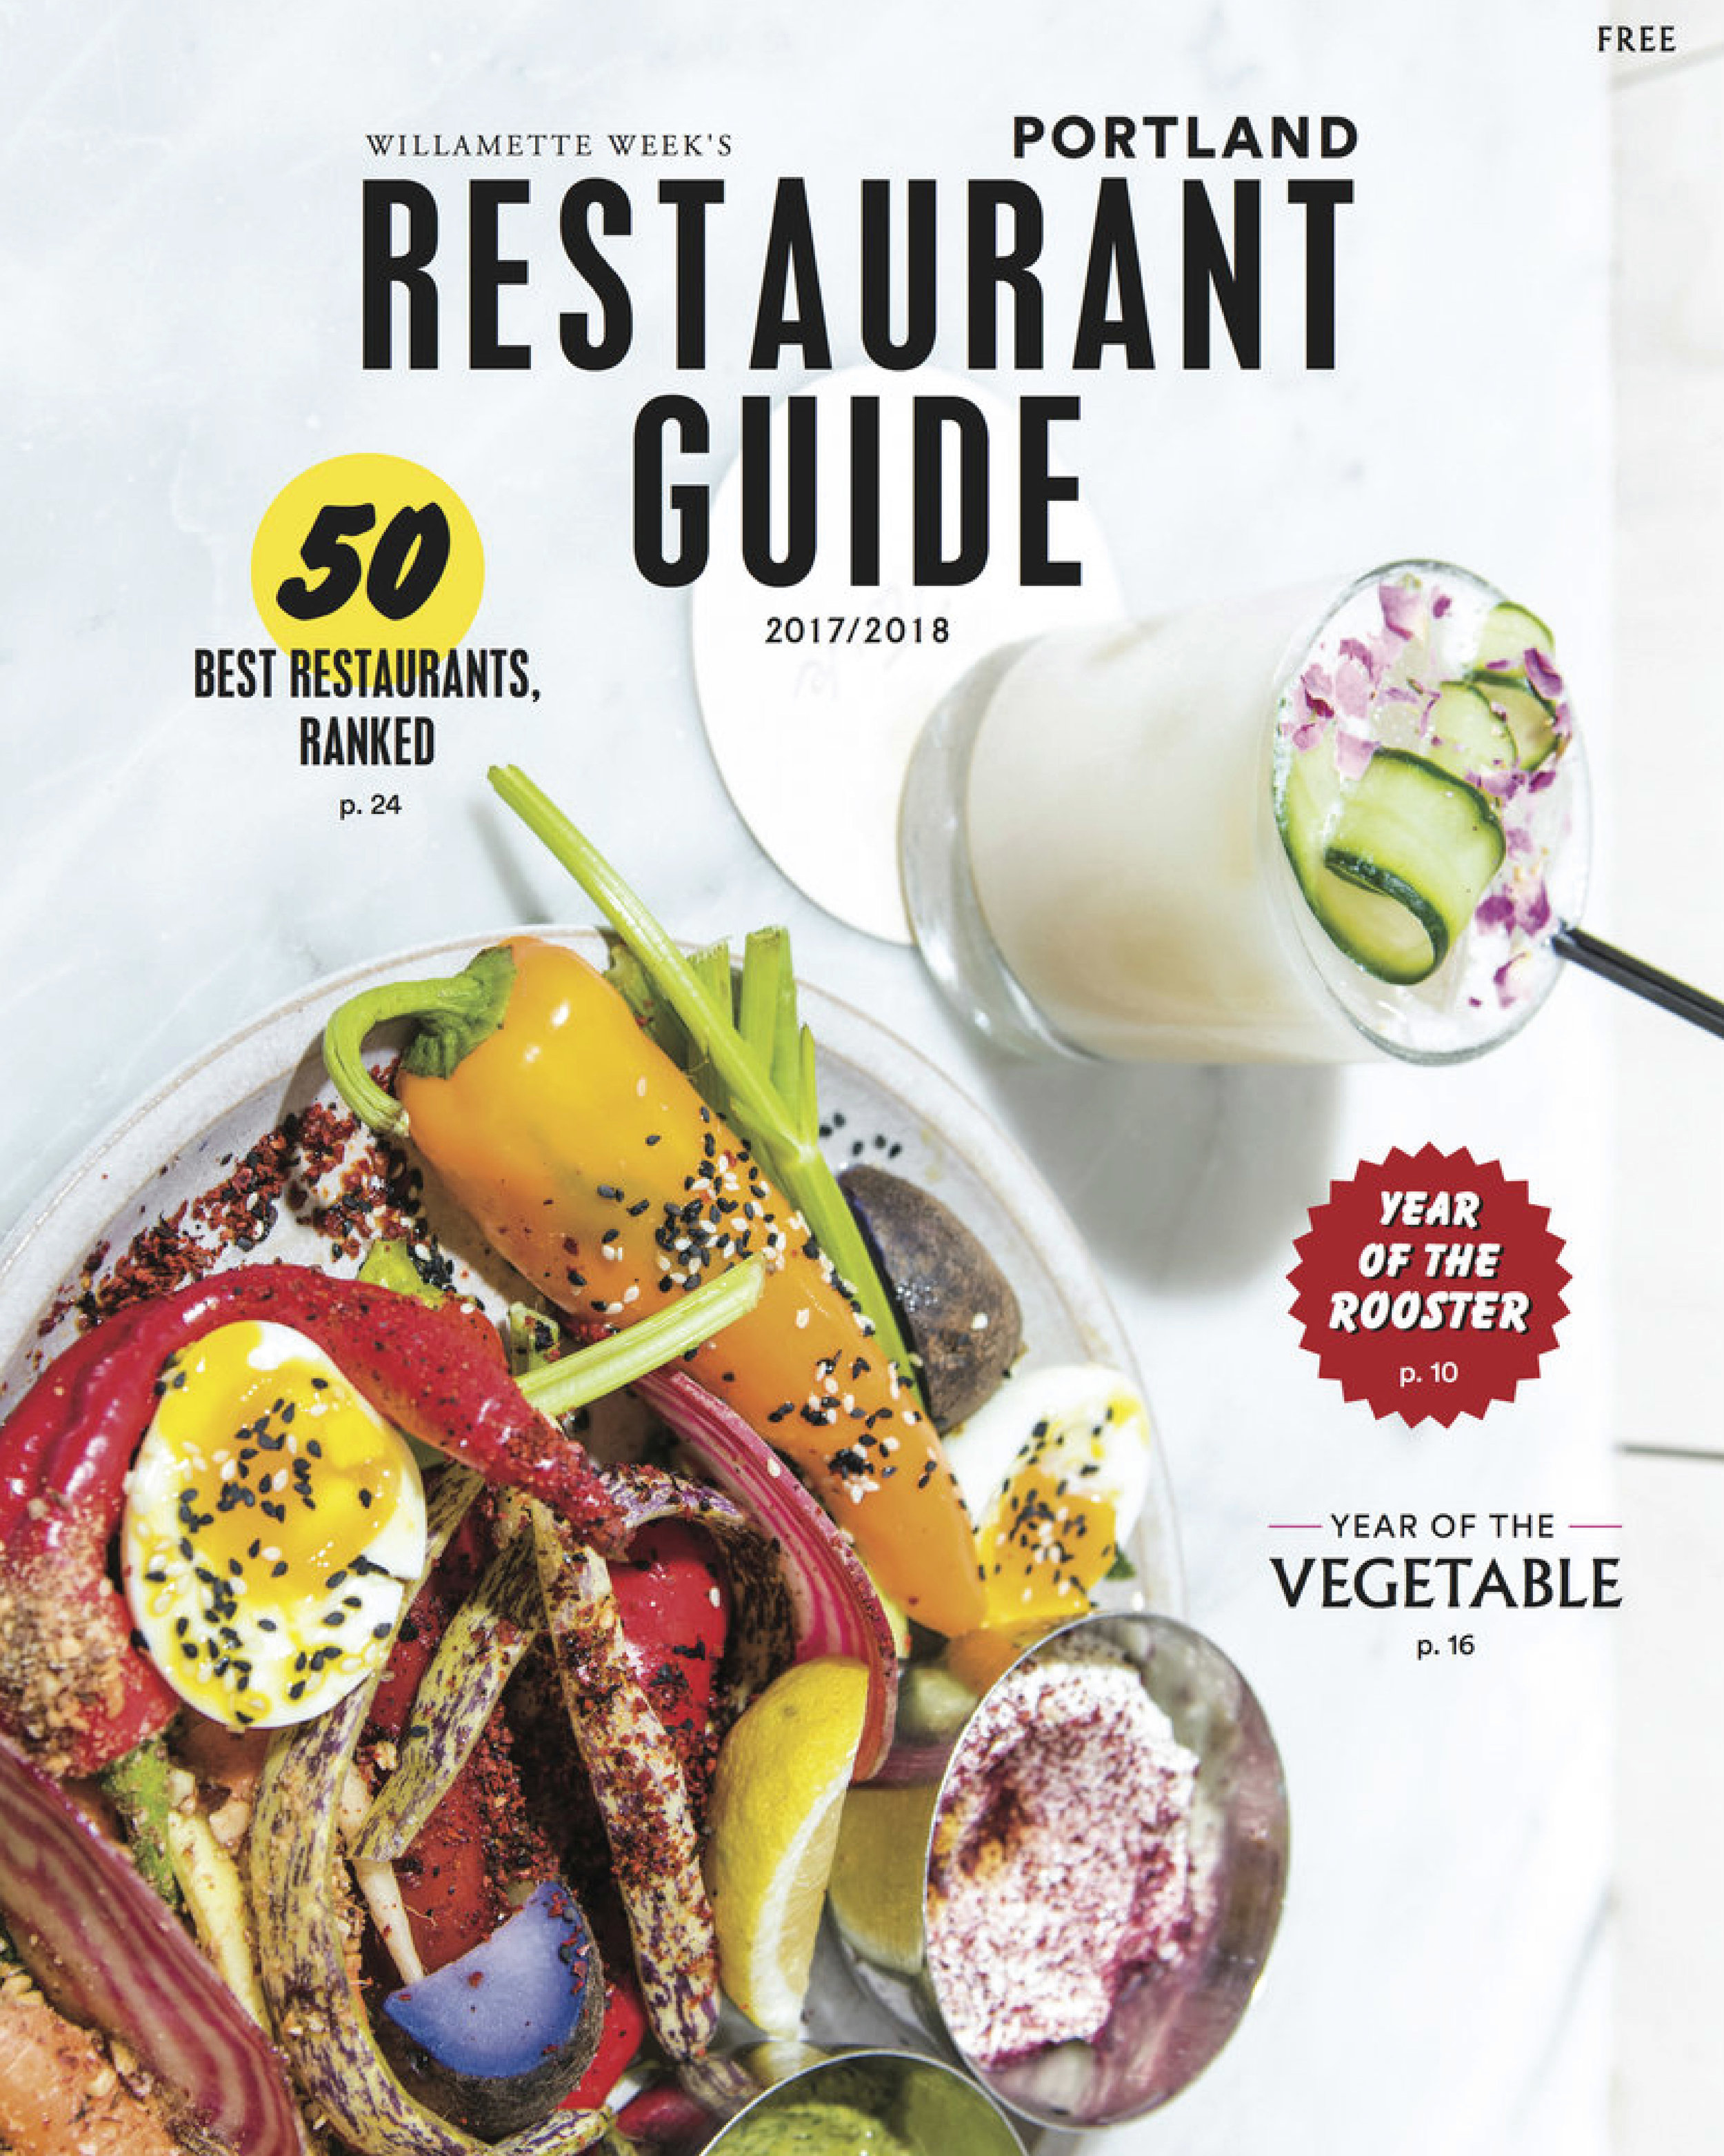 RESTAURANT GUIDE MAGAZINE - Where to eat this year with features on new restaurants, revived kitchens, and notable menus.